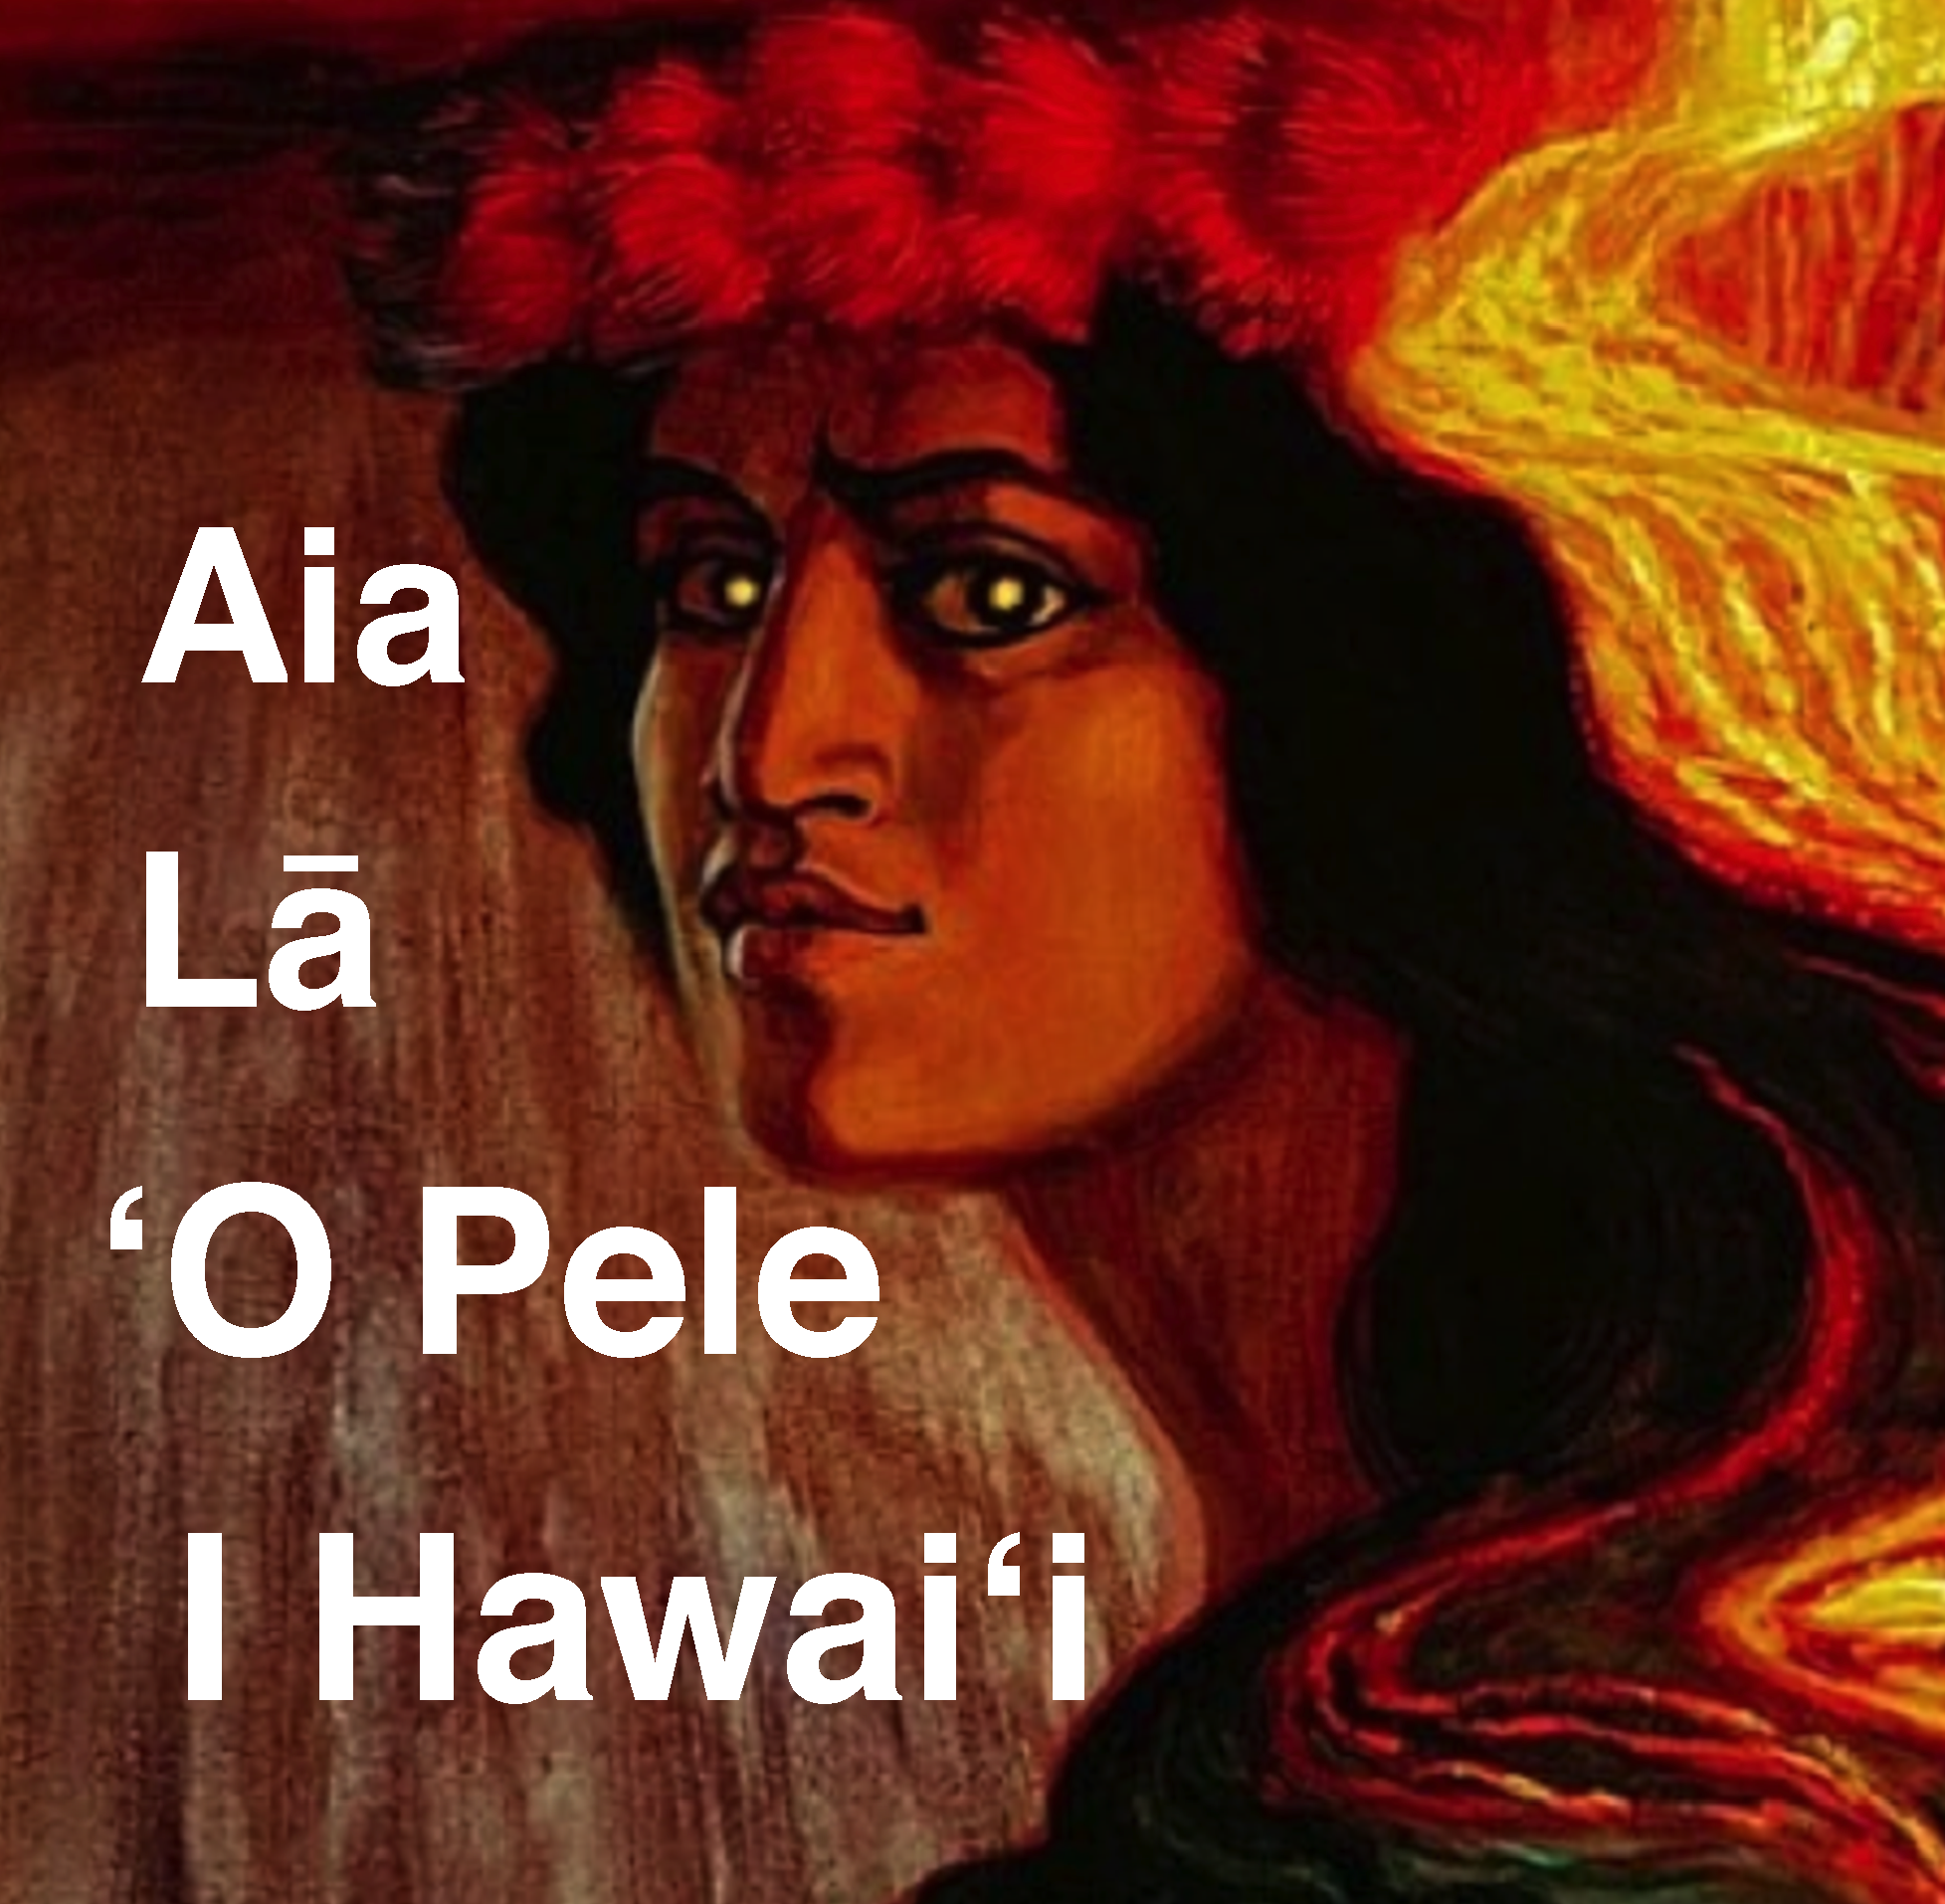 Aia La O Pele i Hawaii: There is Pele in Hawaii— Is Geothermal Appropriate for Hawaii? - Thursday, October 30